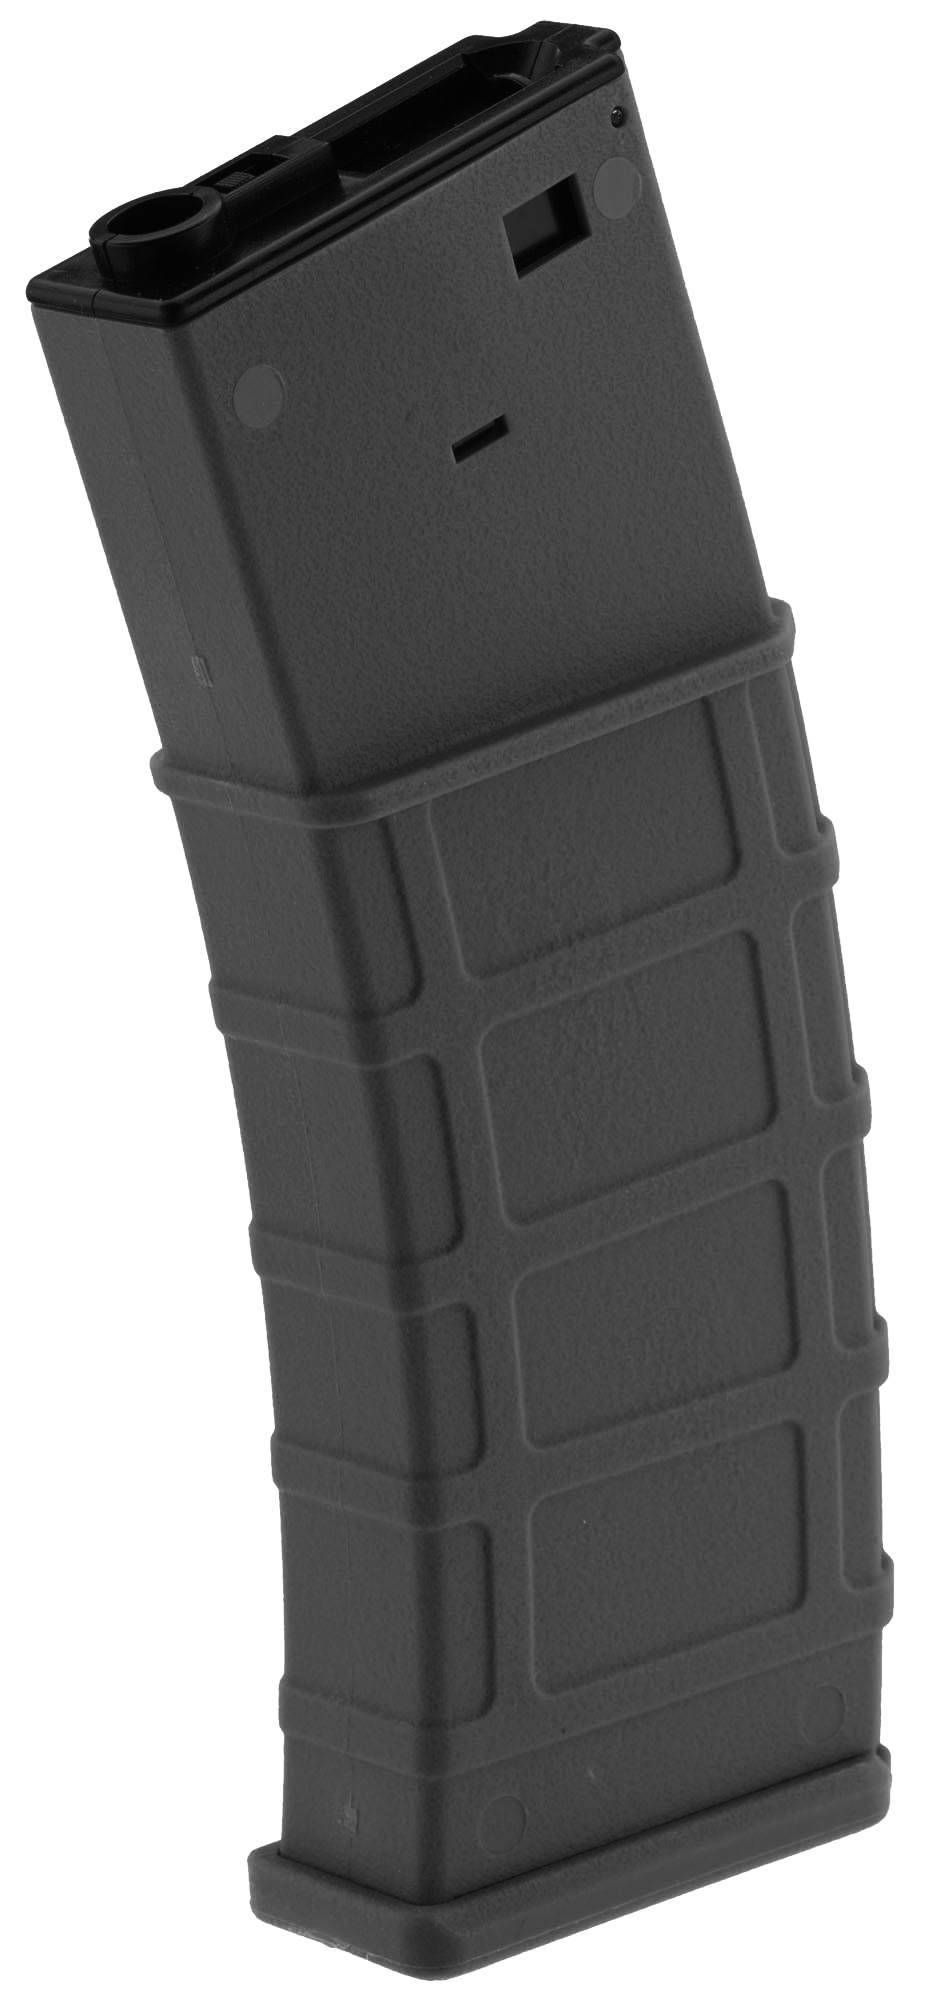 Photo Airsoft Magazine Polymer Flash Hi Cap 360 rds for M4-M16 (made by Lonex) - Black